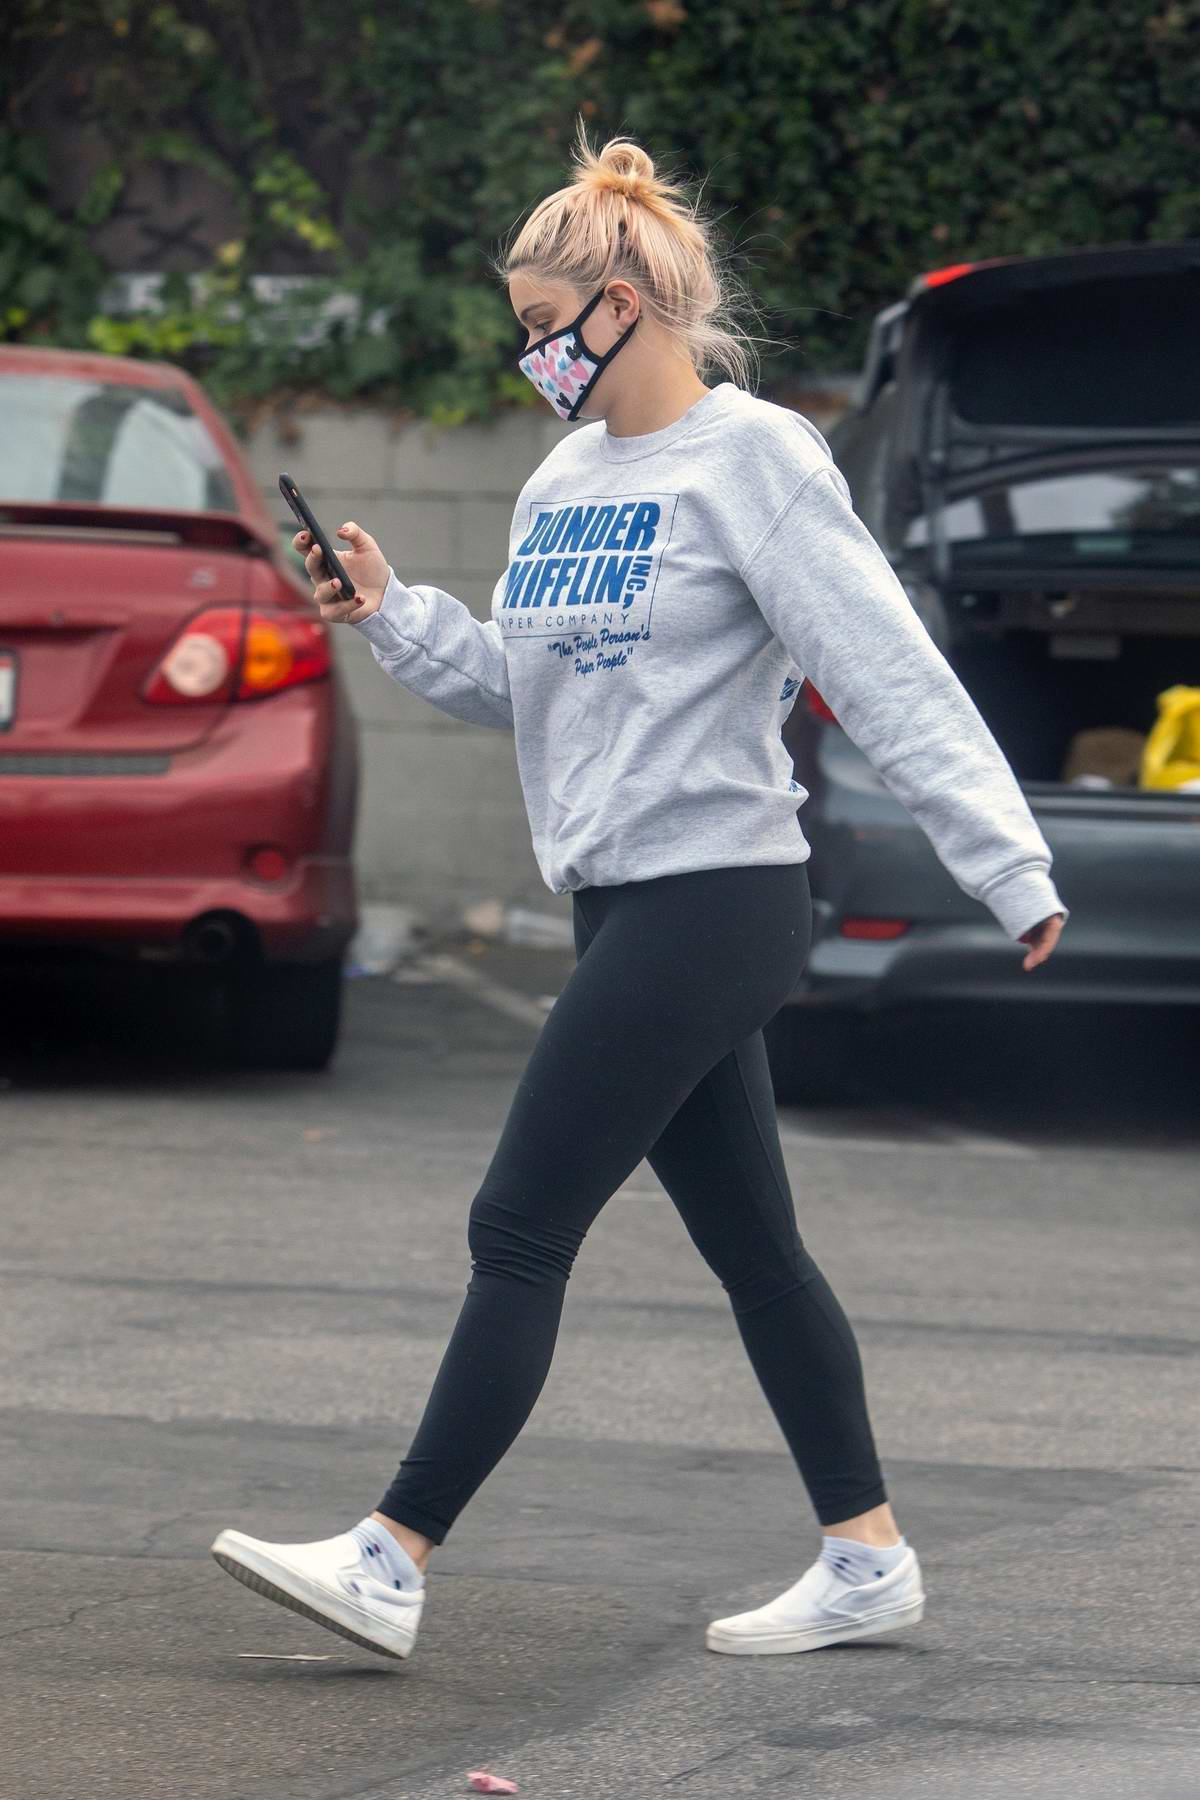 Ariel Winter seen wearing 'The Office' sweatshirt and leggings while out shopping at CVS in Studio City, California